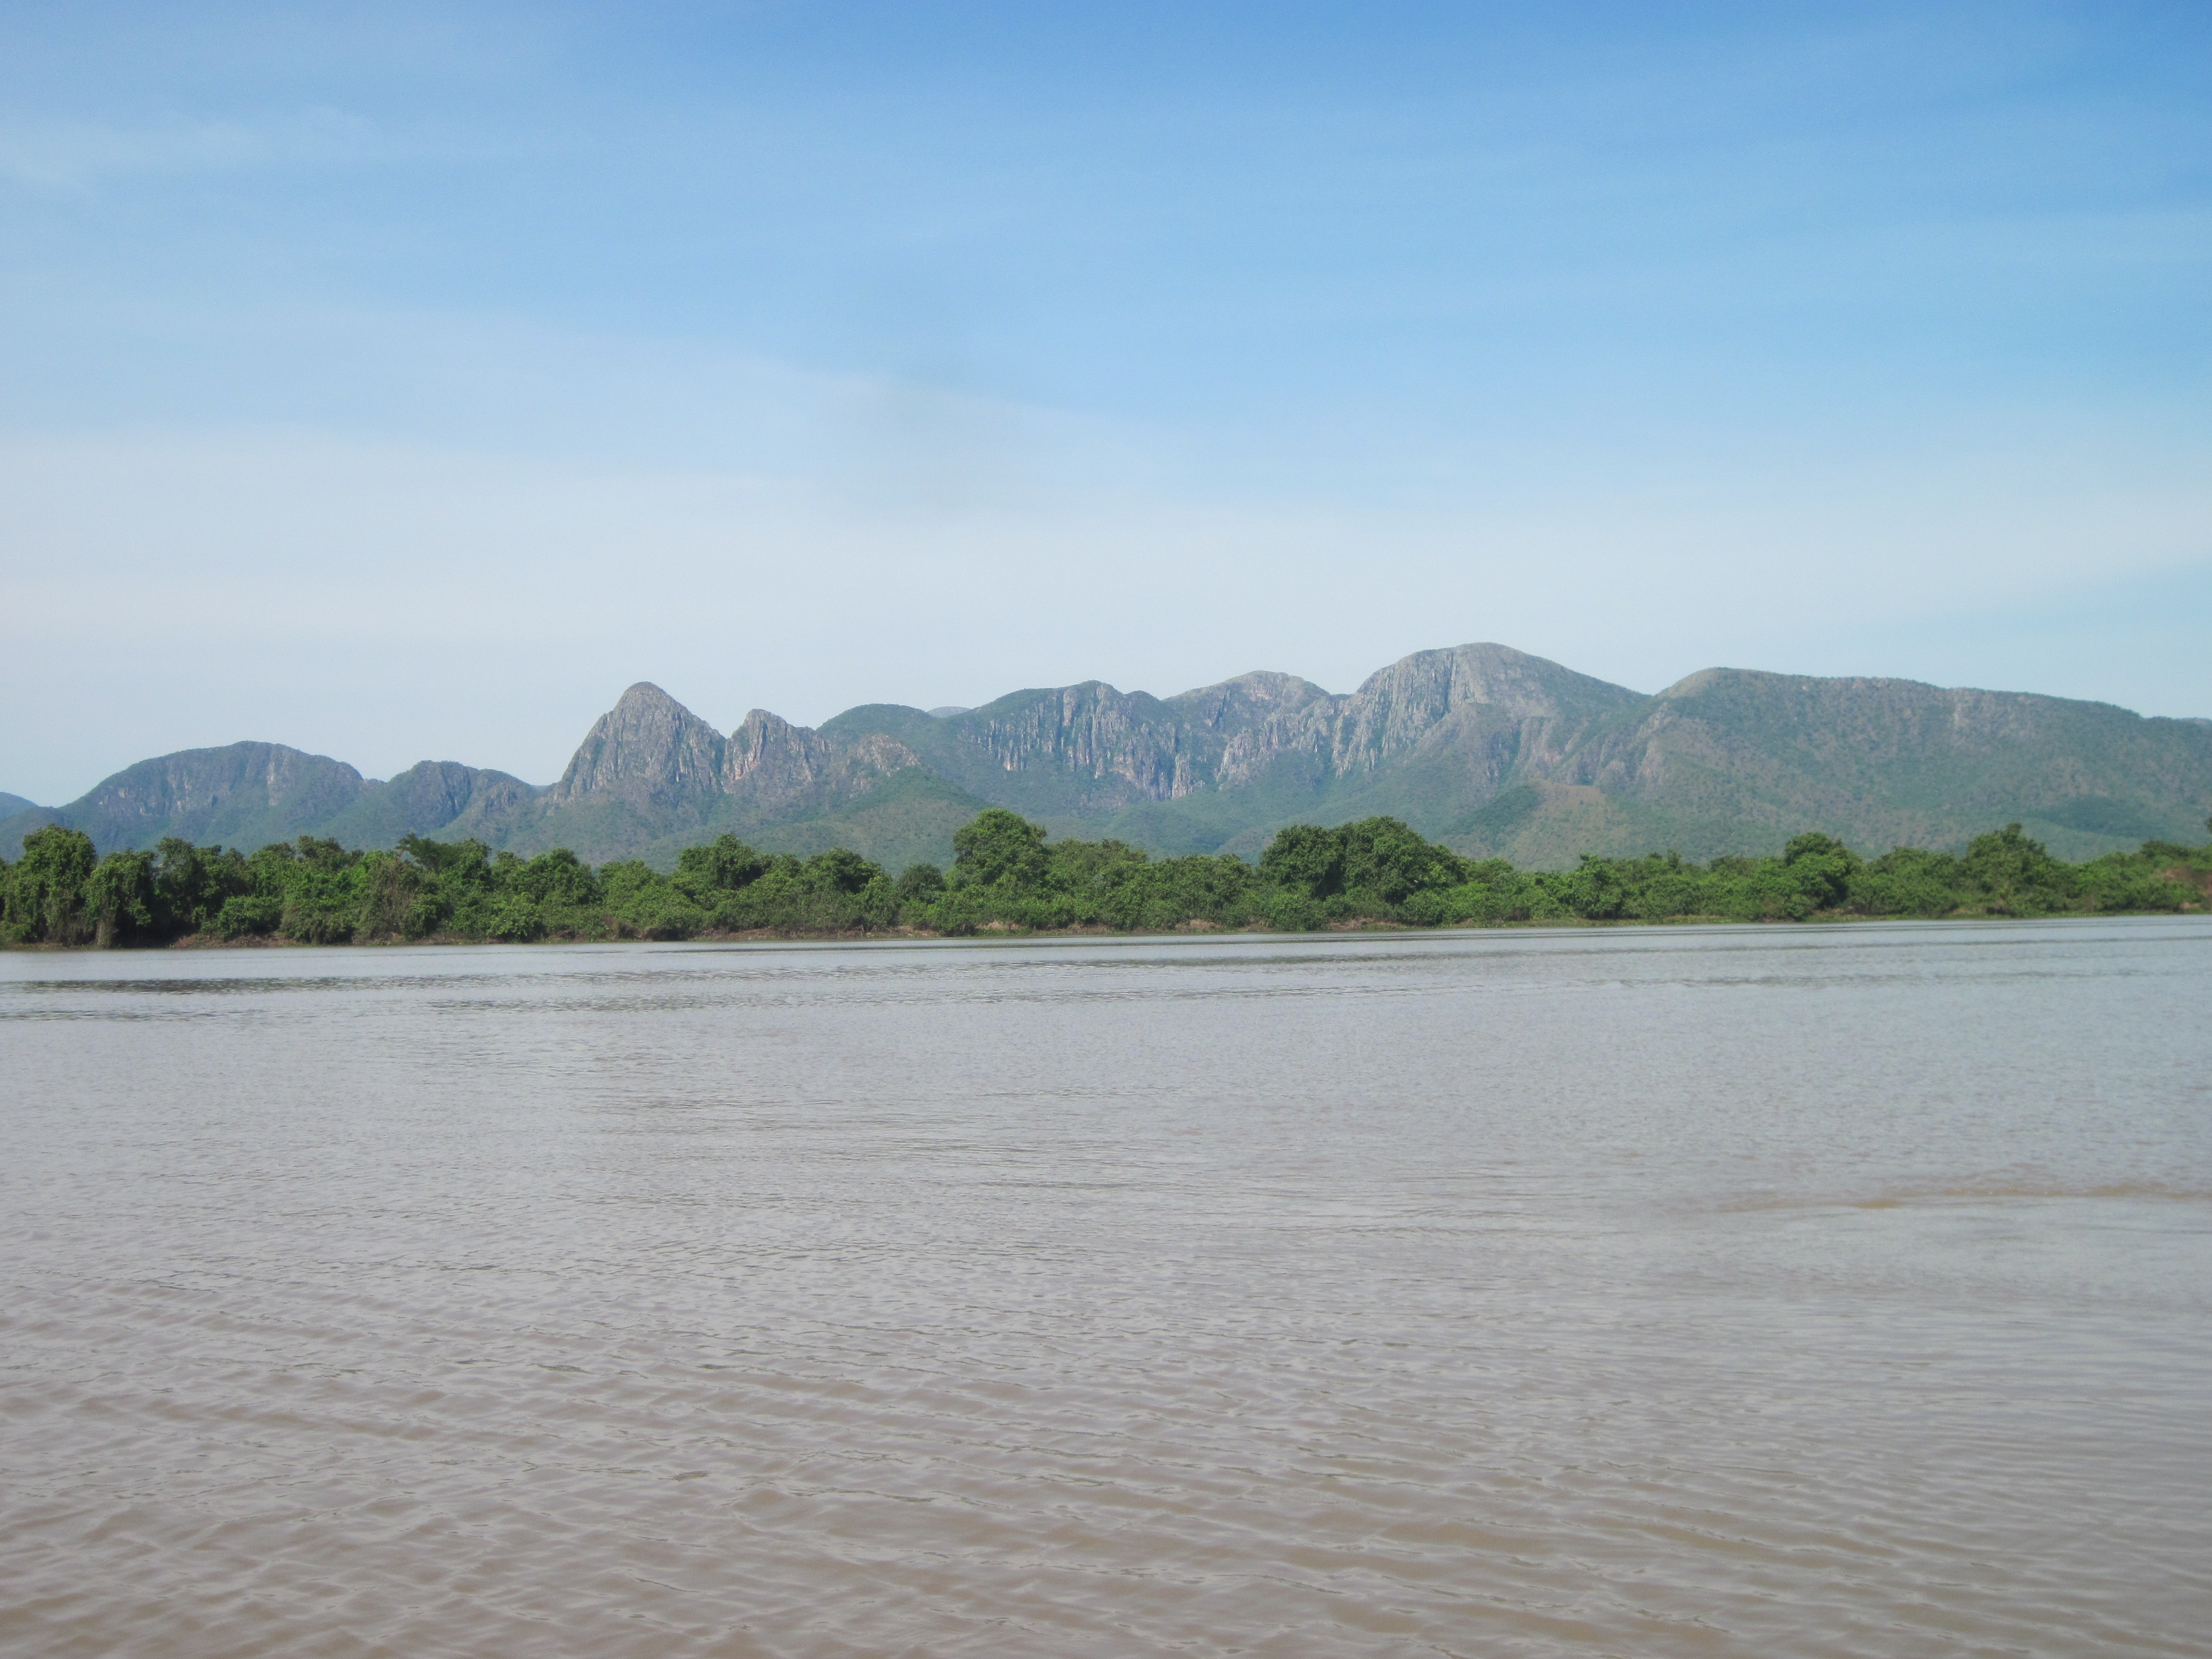 The Pantanal lowland landscape facing west to the Serra do Amolar ridge (left) and view of the Paraguay River facing southeast from the top of the ridge (right).